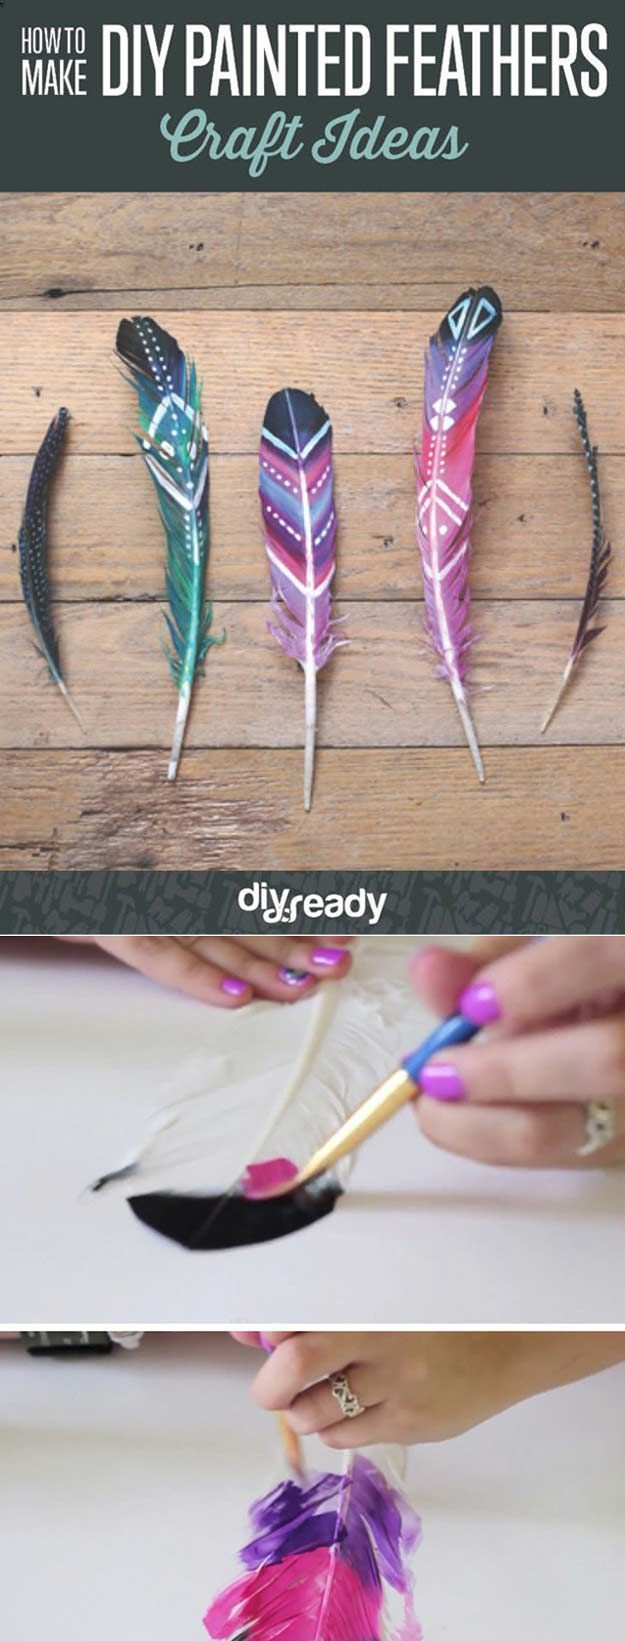 Easy DIY Photo Booth Prop Ideas | Painted Feathers by DIY Ready at http://diyready.com/19-cool-diy-photo-booth-props/